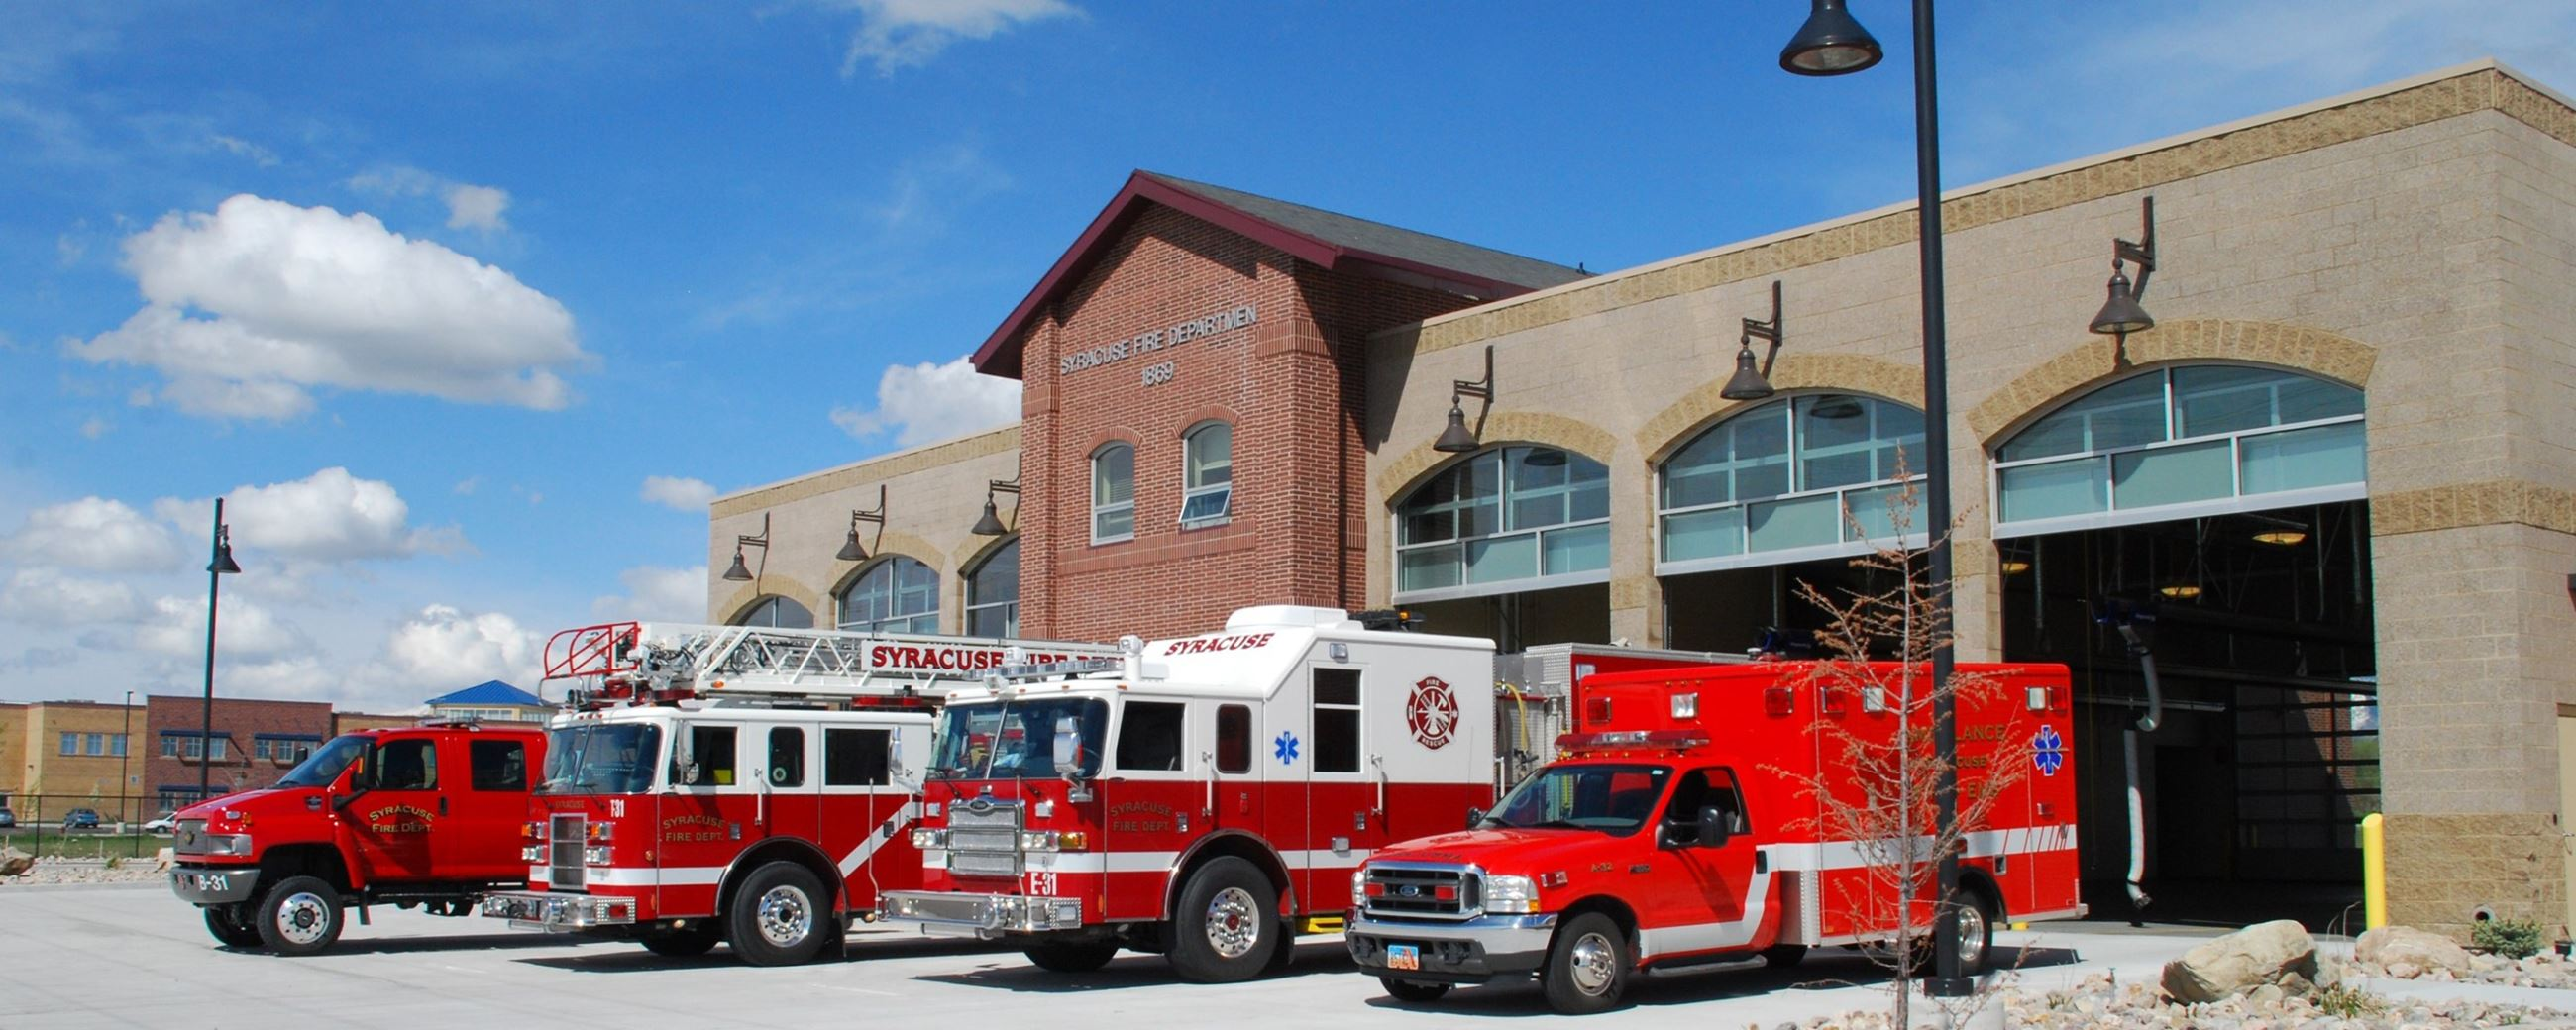 Syracuse-Fire-Dept-From-Website